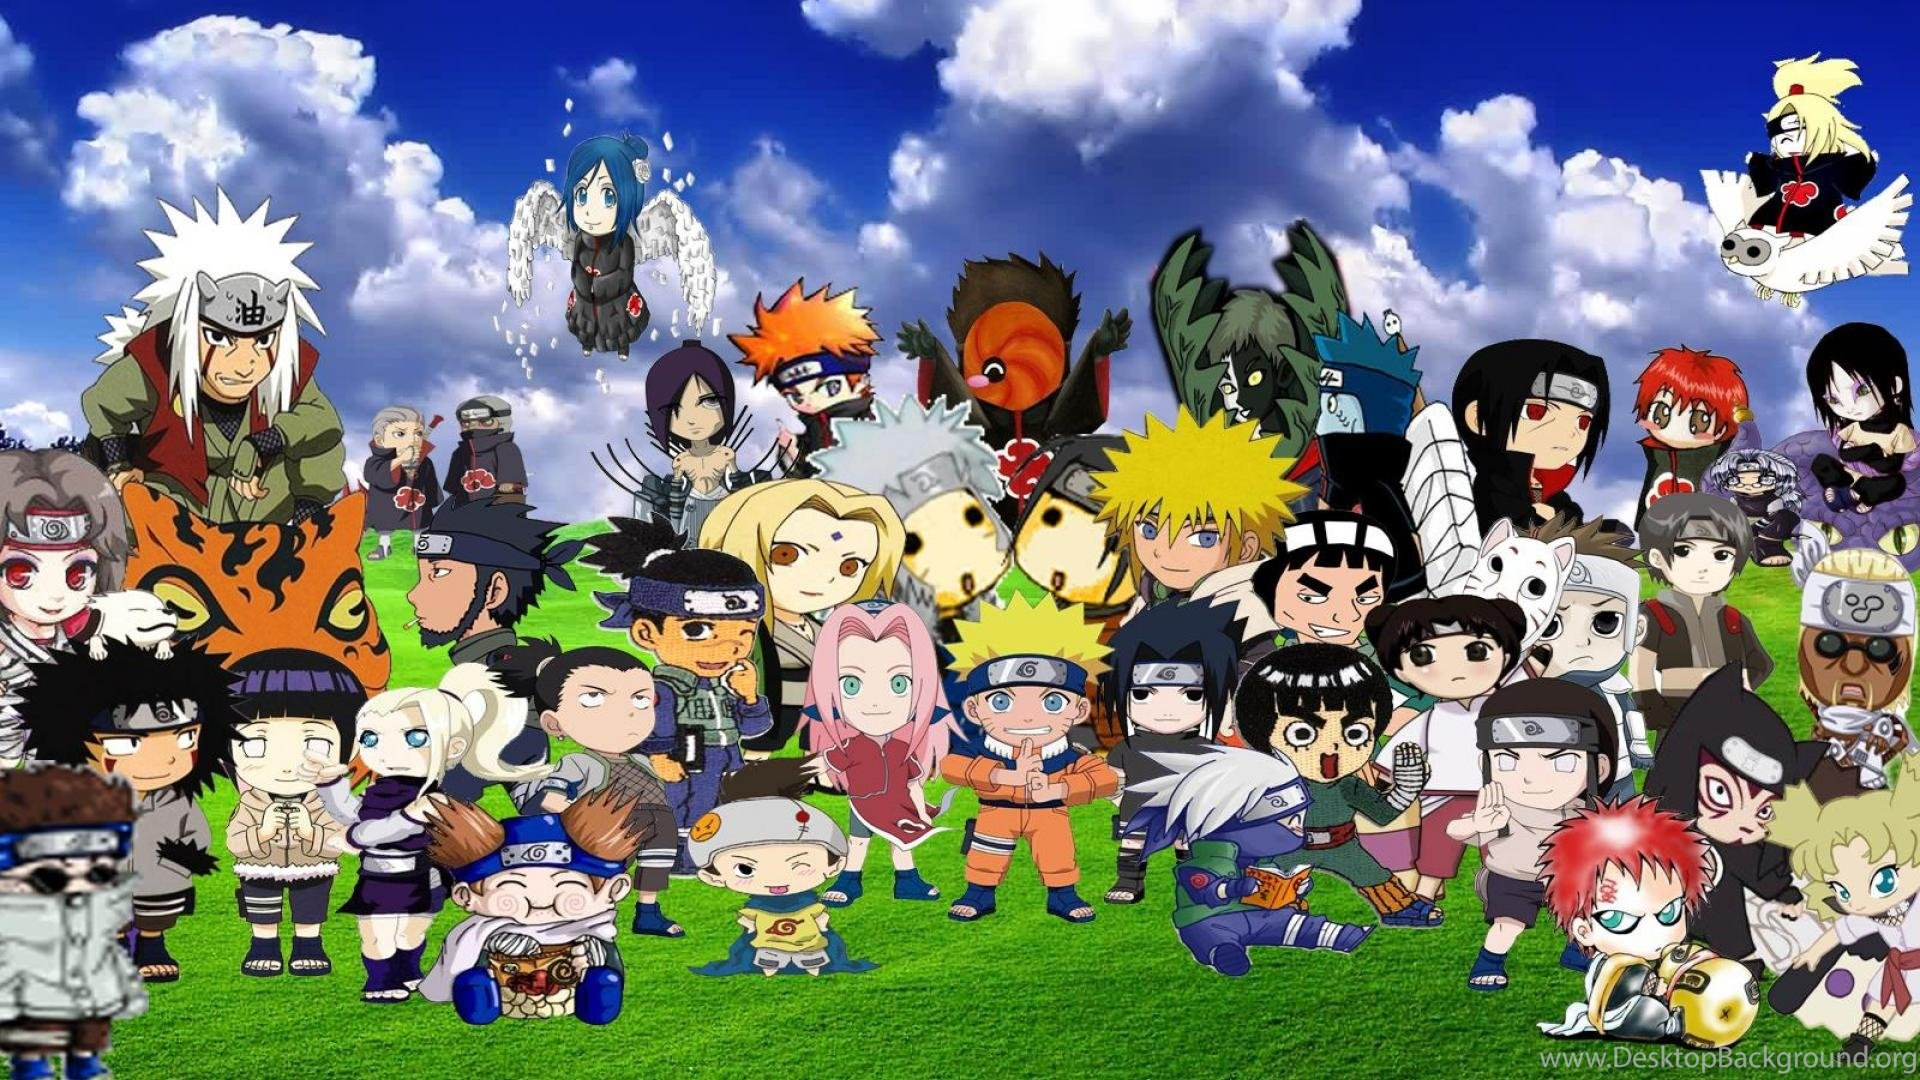 Amazing Wallpaper Naruto Group - 379284_wallpaper-chibi-naruto-anime-manga-characters-group-cute_1920x1080_h  2018_273810.jpg